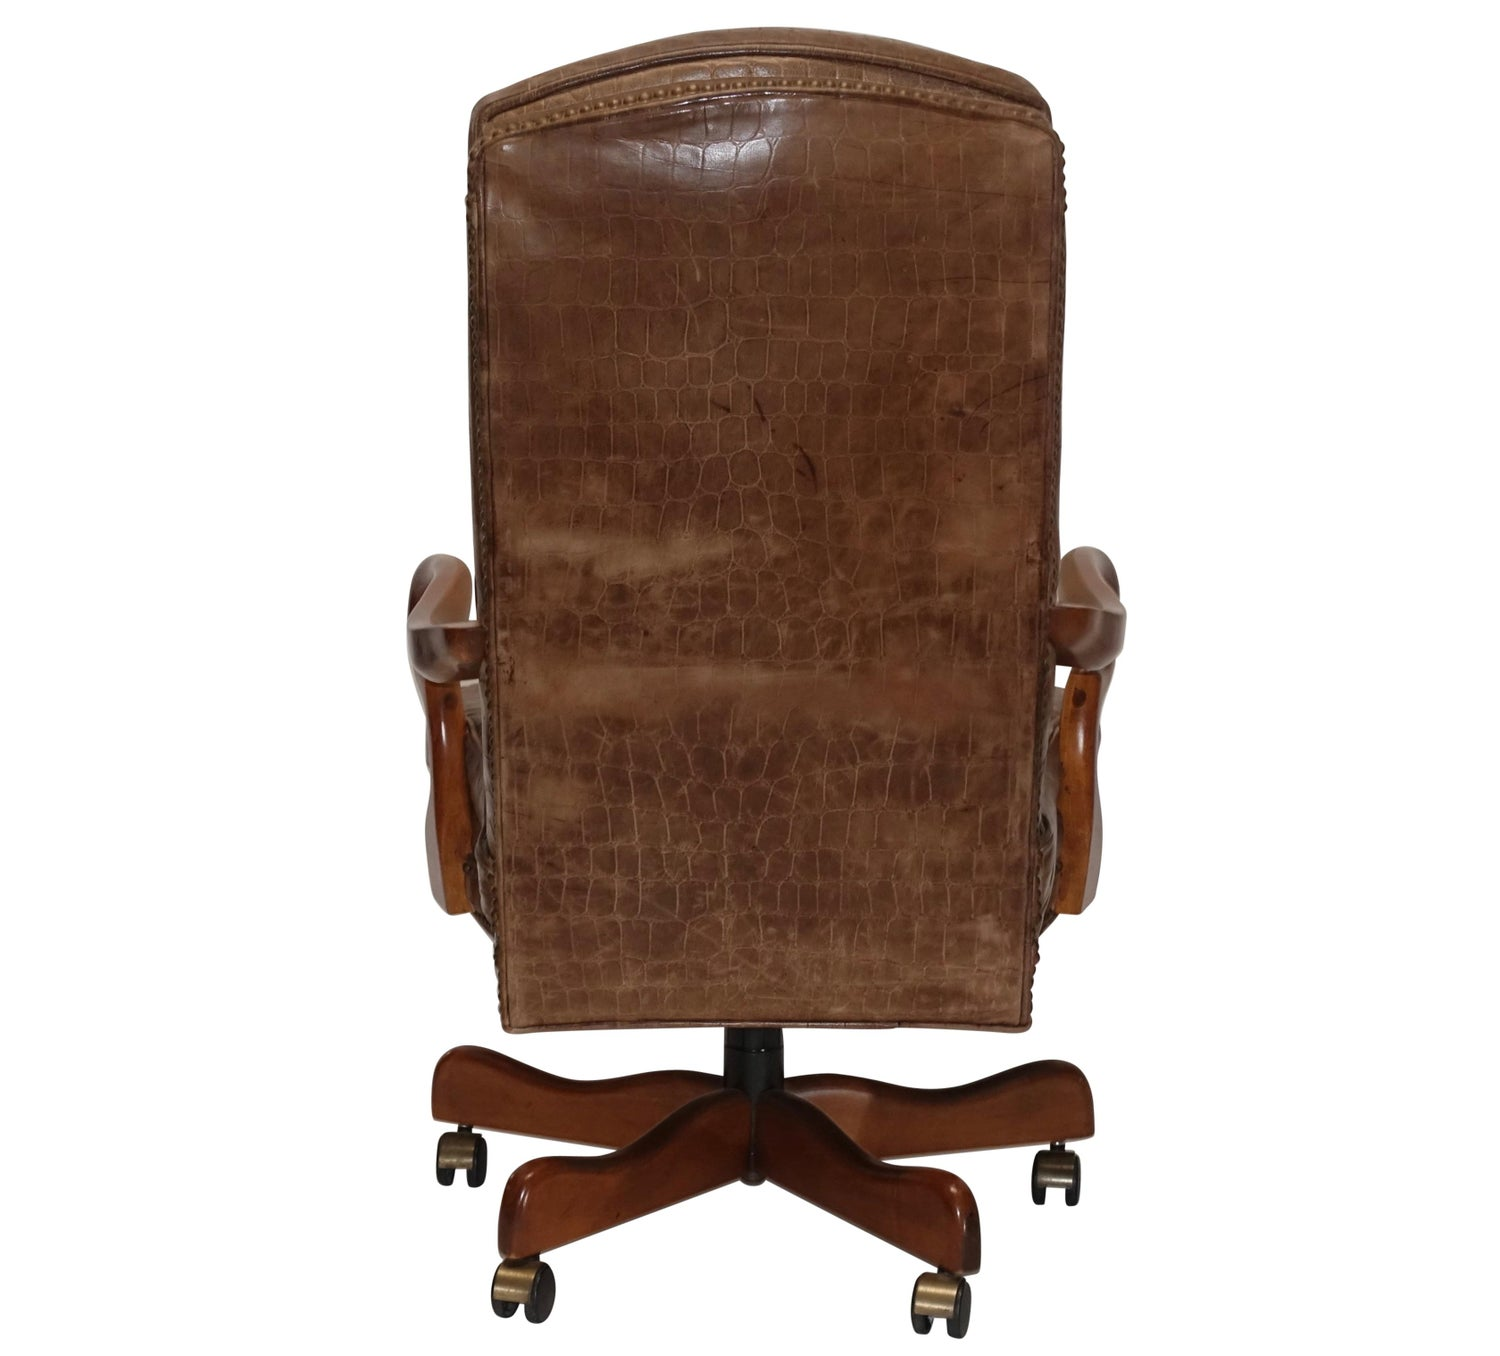 Terrific Executive Desk Chair With Alligator Embossed Leather Andrewgaddart Wooden Chair Designs For Living Room Andrewgaddartcom